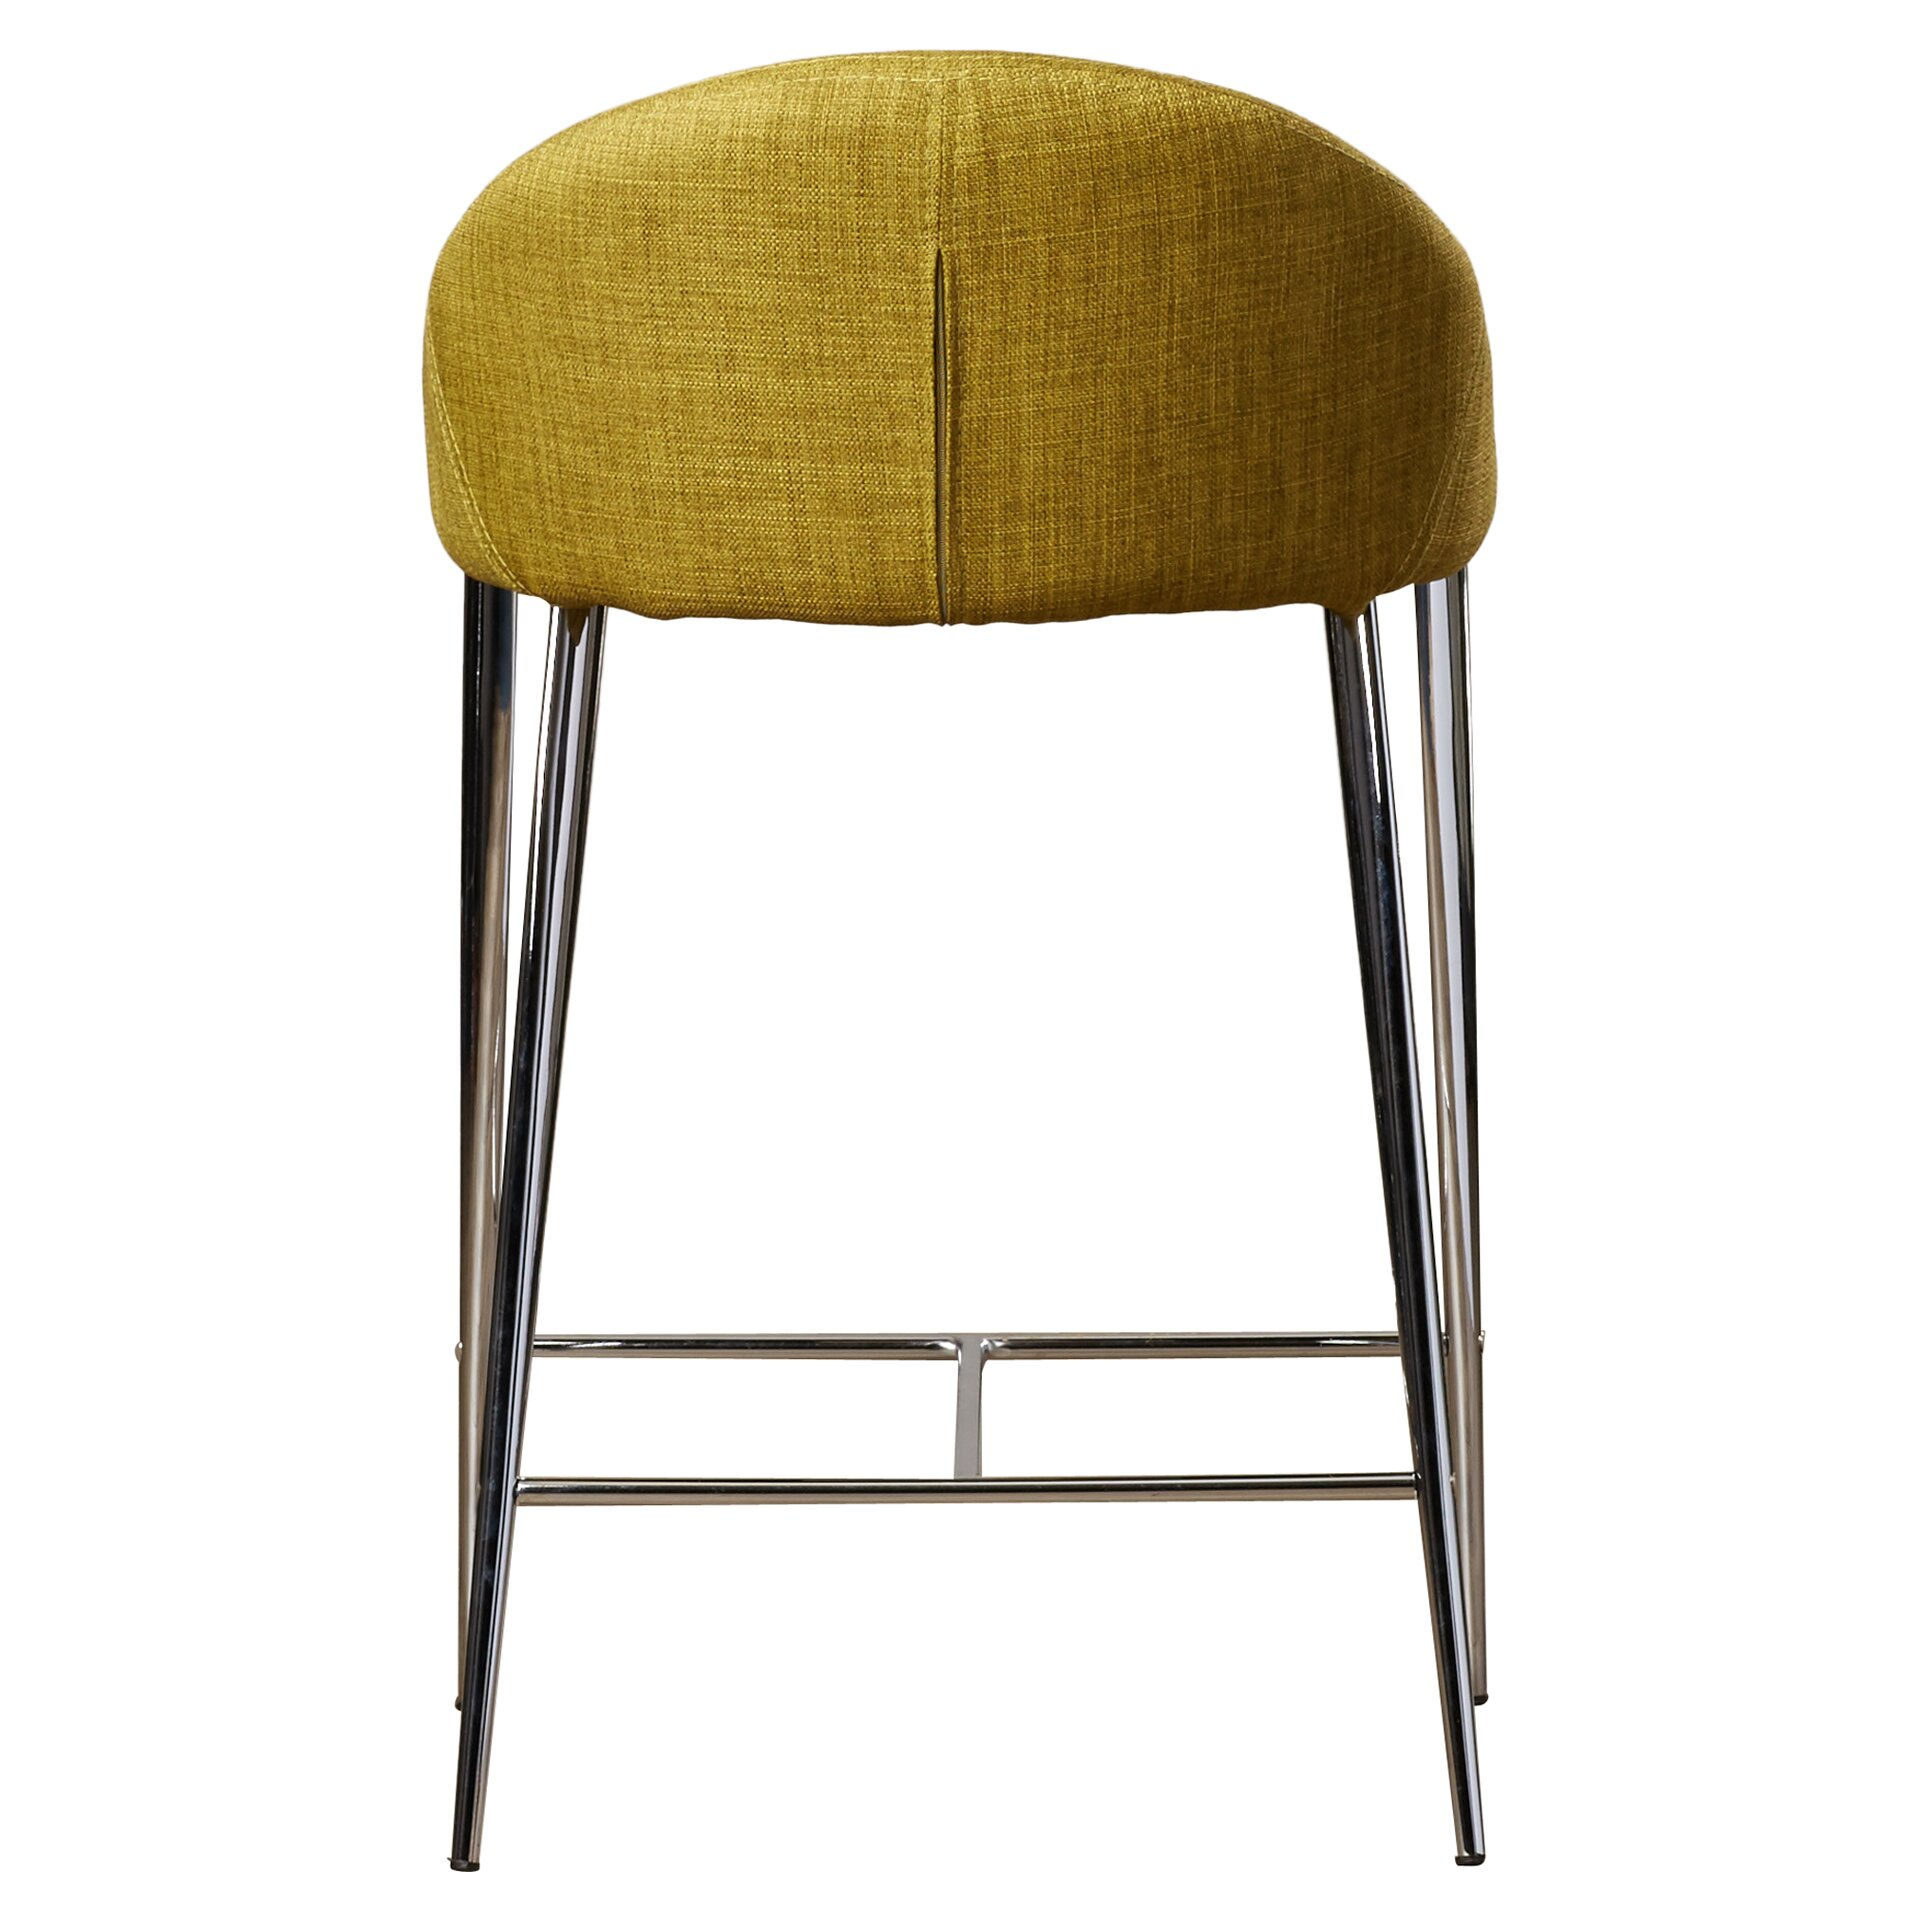 Varick Gallery Tindley 244quot Bar Stool with Cushion  : Boyds2B24425222BCounter2BStool2Bwith2BCushion from www.wayfair.ca size 1920 x 1920 jpeg 390kB